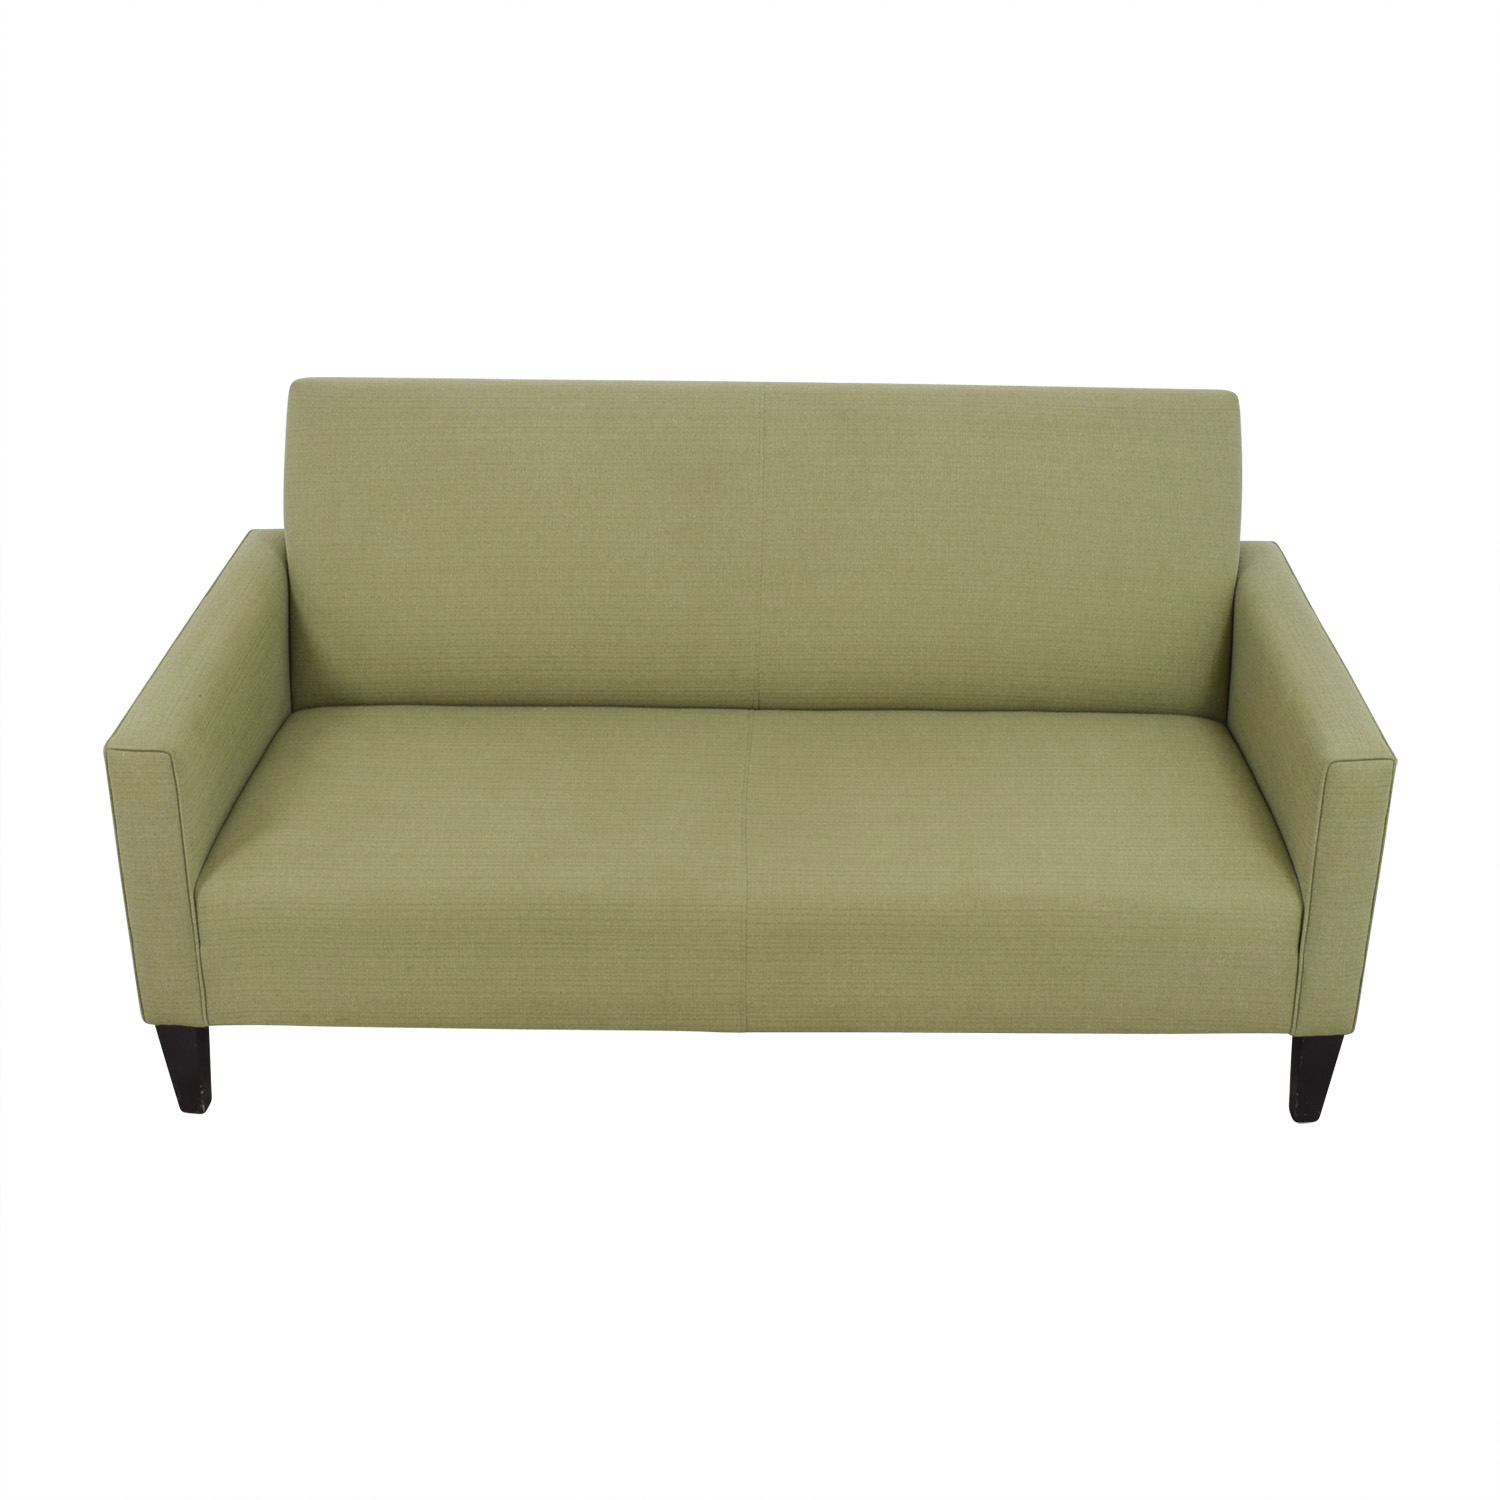 Crate & Barrel Crate & Barrel Moss Green Single Cushion Couch Sofas